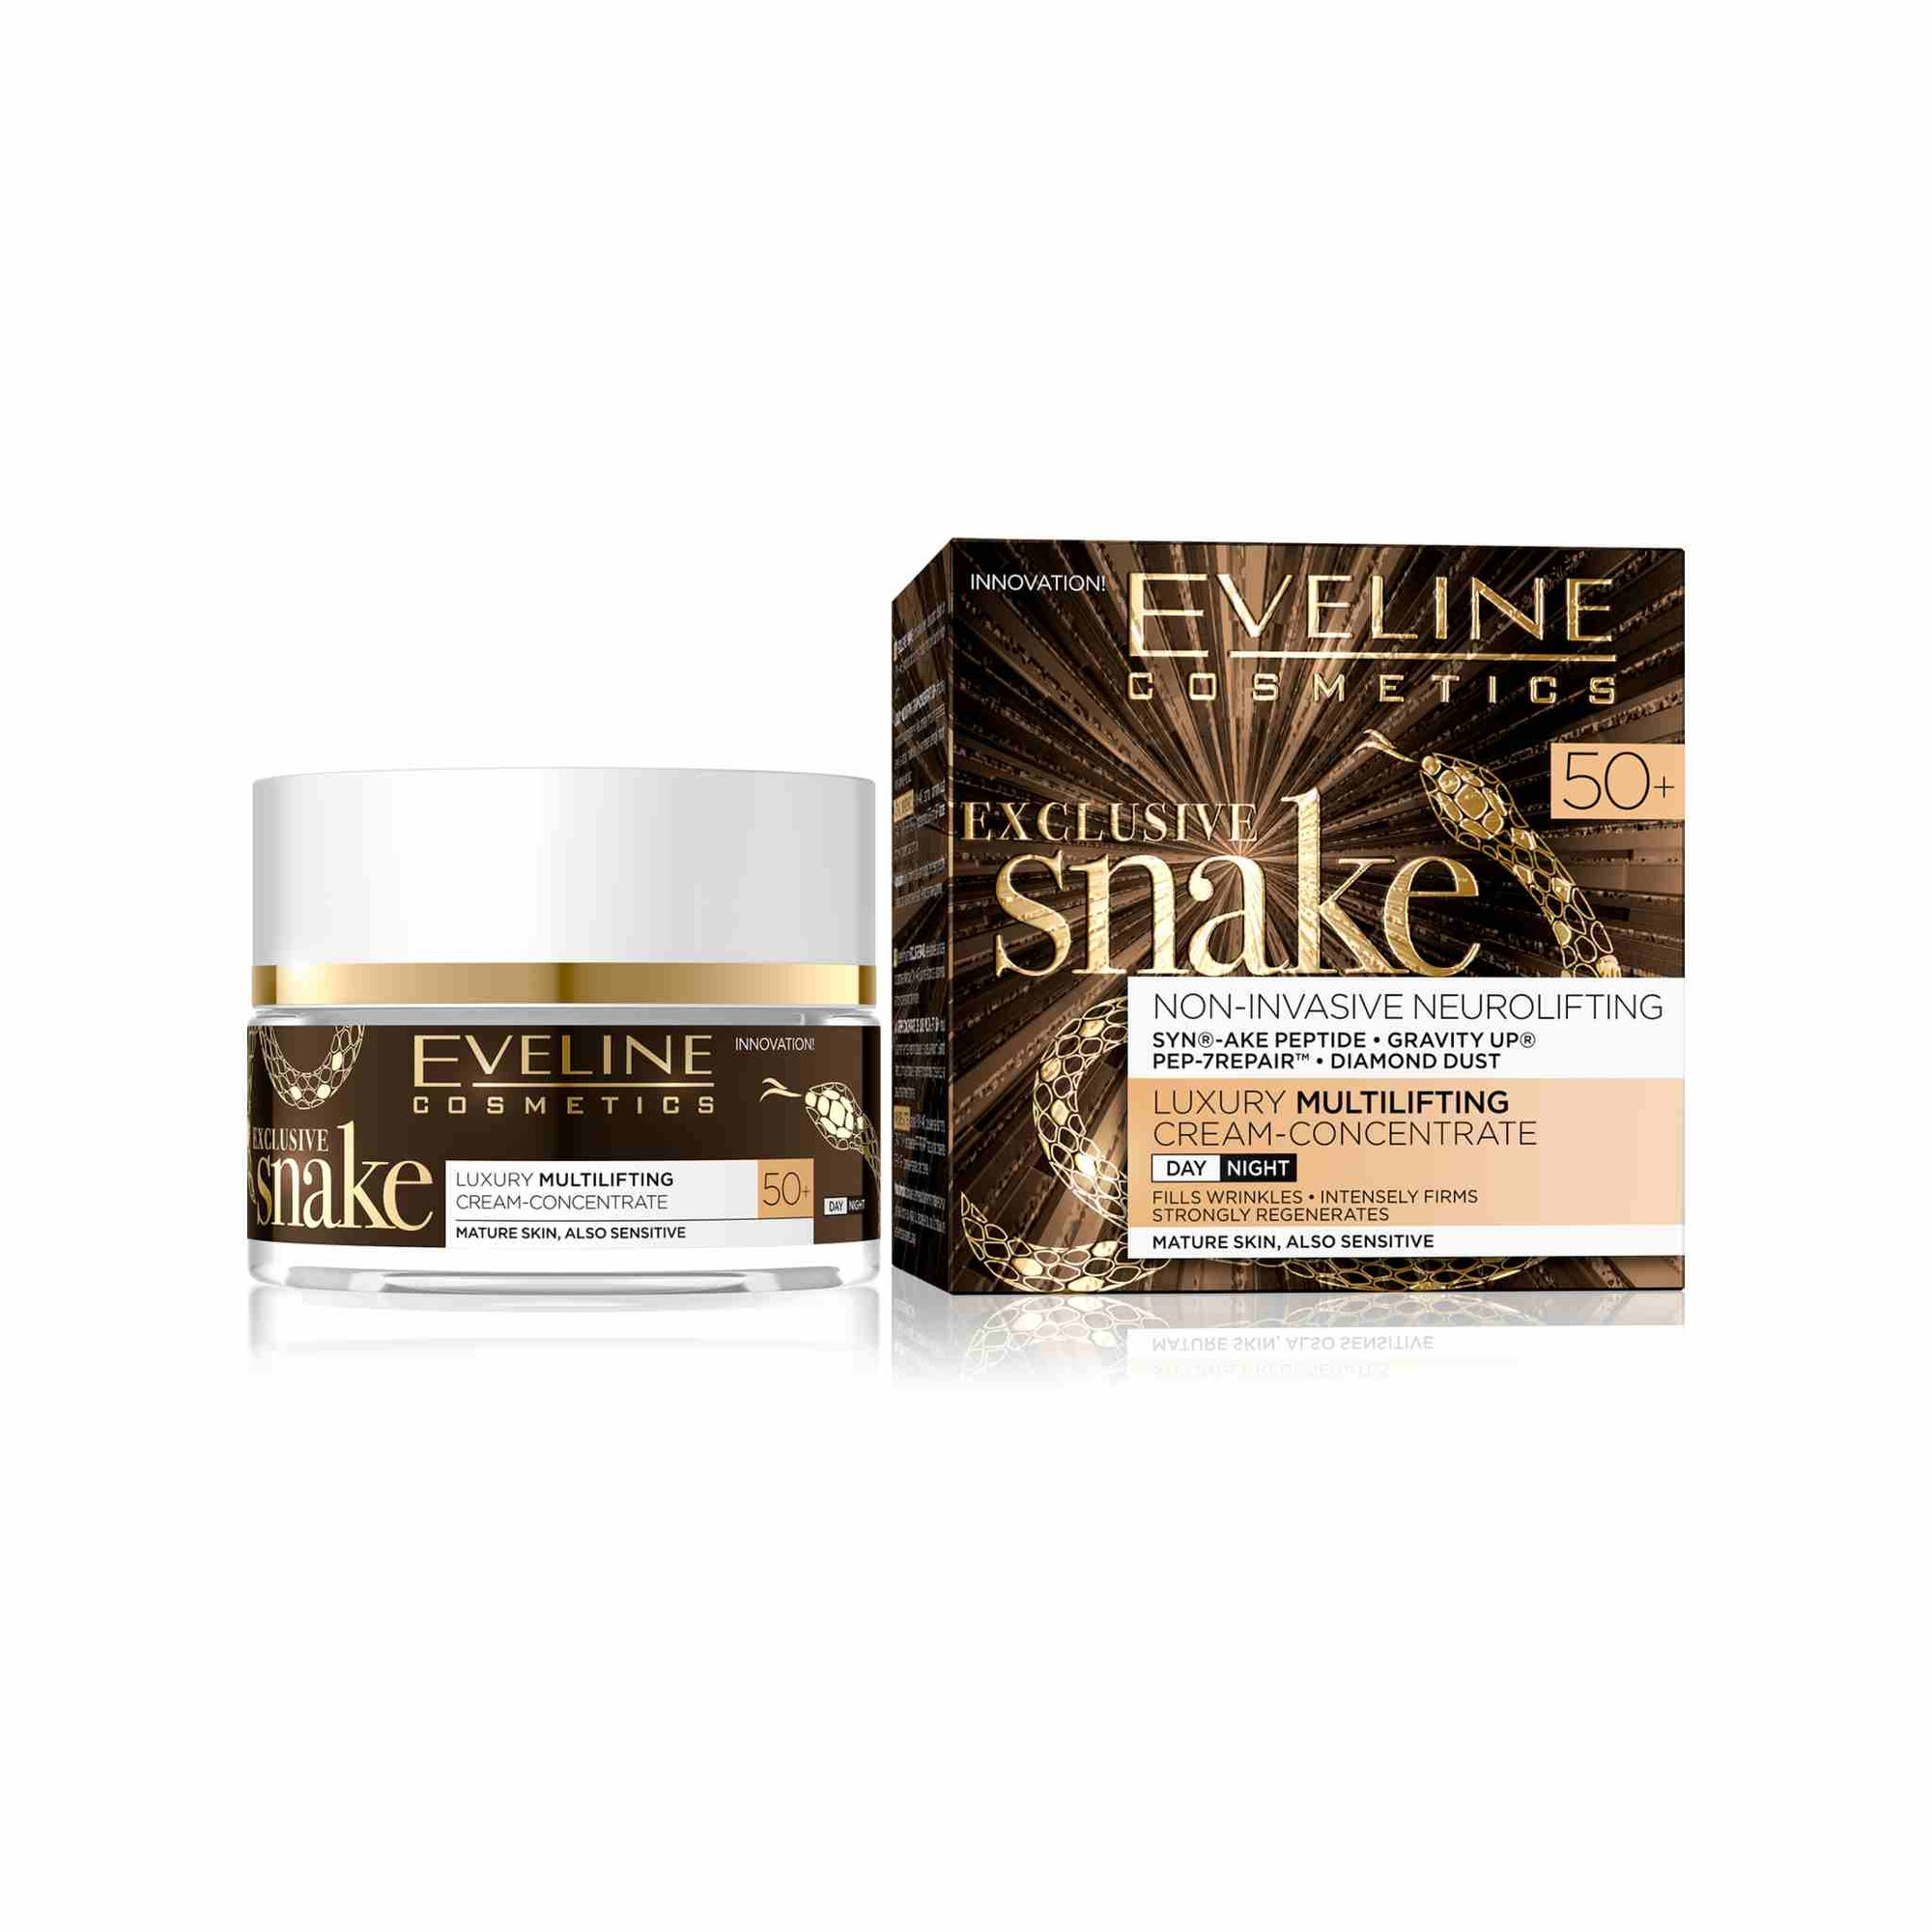 Exclusive Snake Neurolifting Luxury Multi-lifting Day and Night Cream 50+